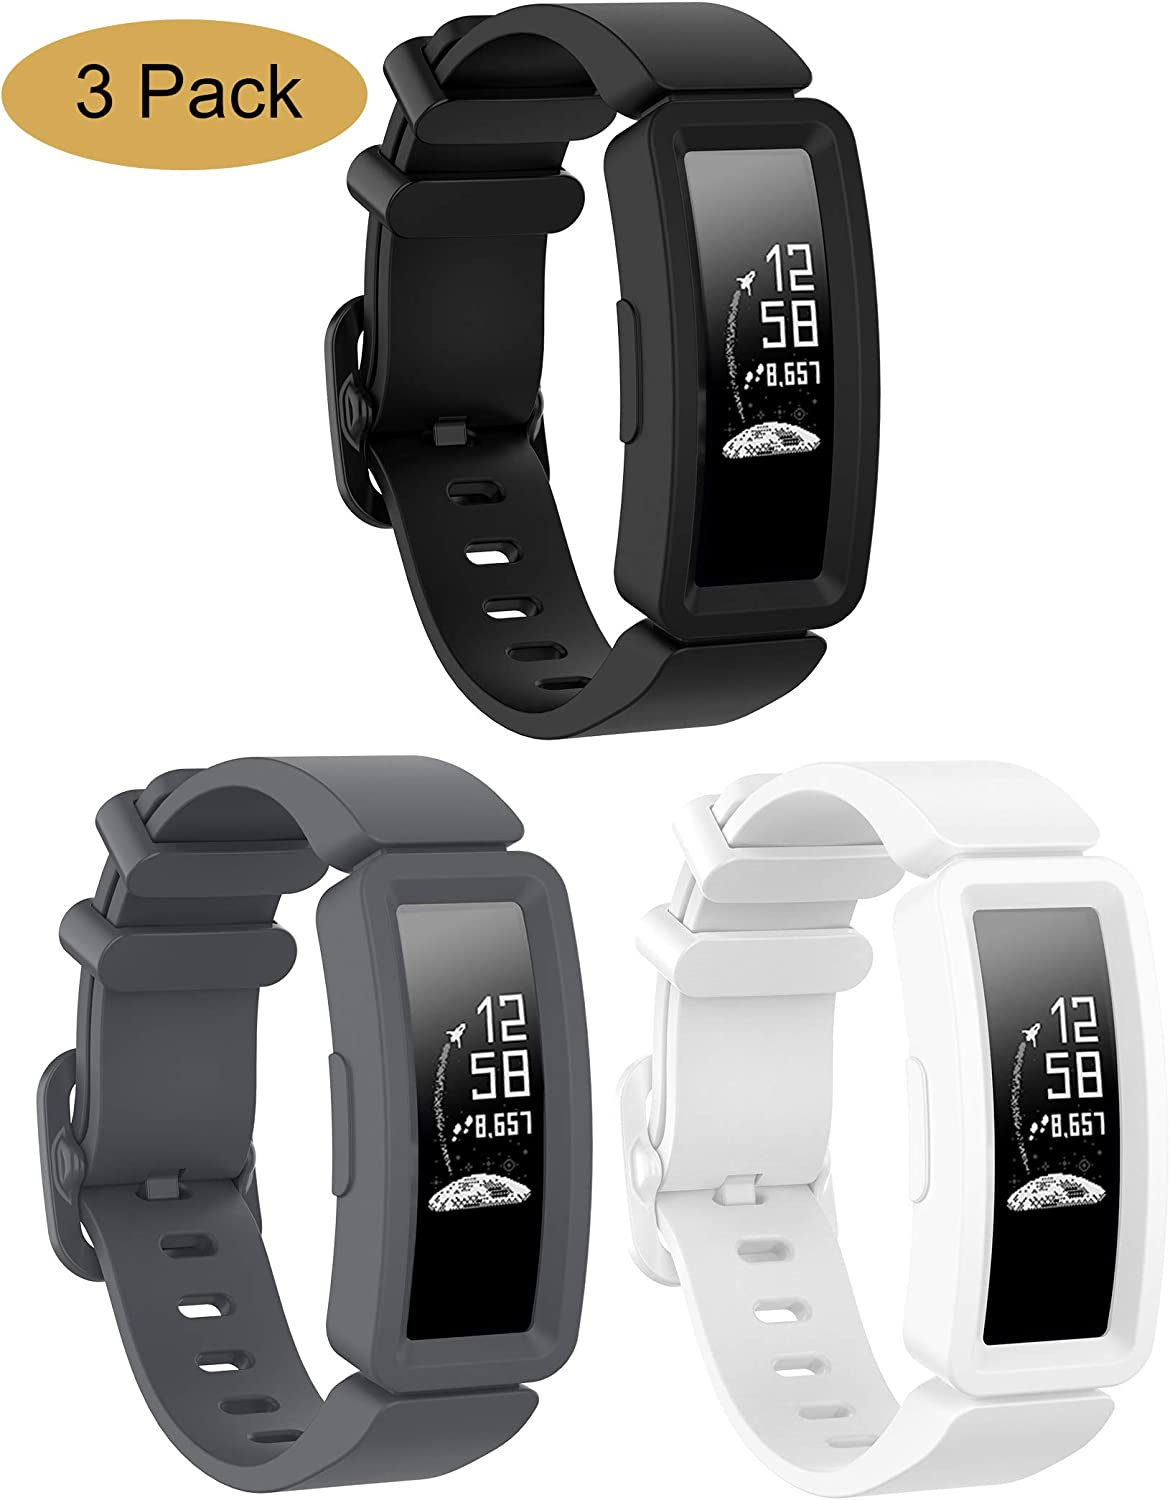 Bolesi Compatible Silicone Bands for Fitbit ace 2,Water Resistant Fitness Watch Strap for Fitbit ace 2 Bands for Kids Boys Girls(black+gray+white)